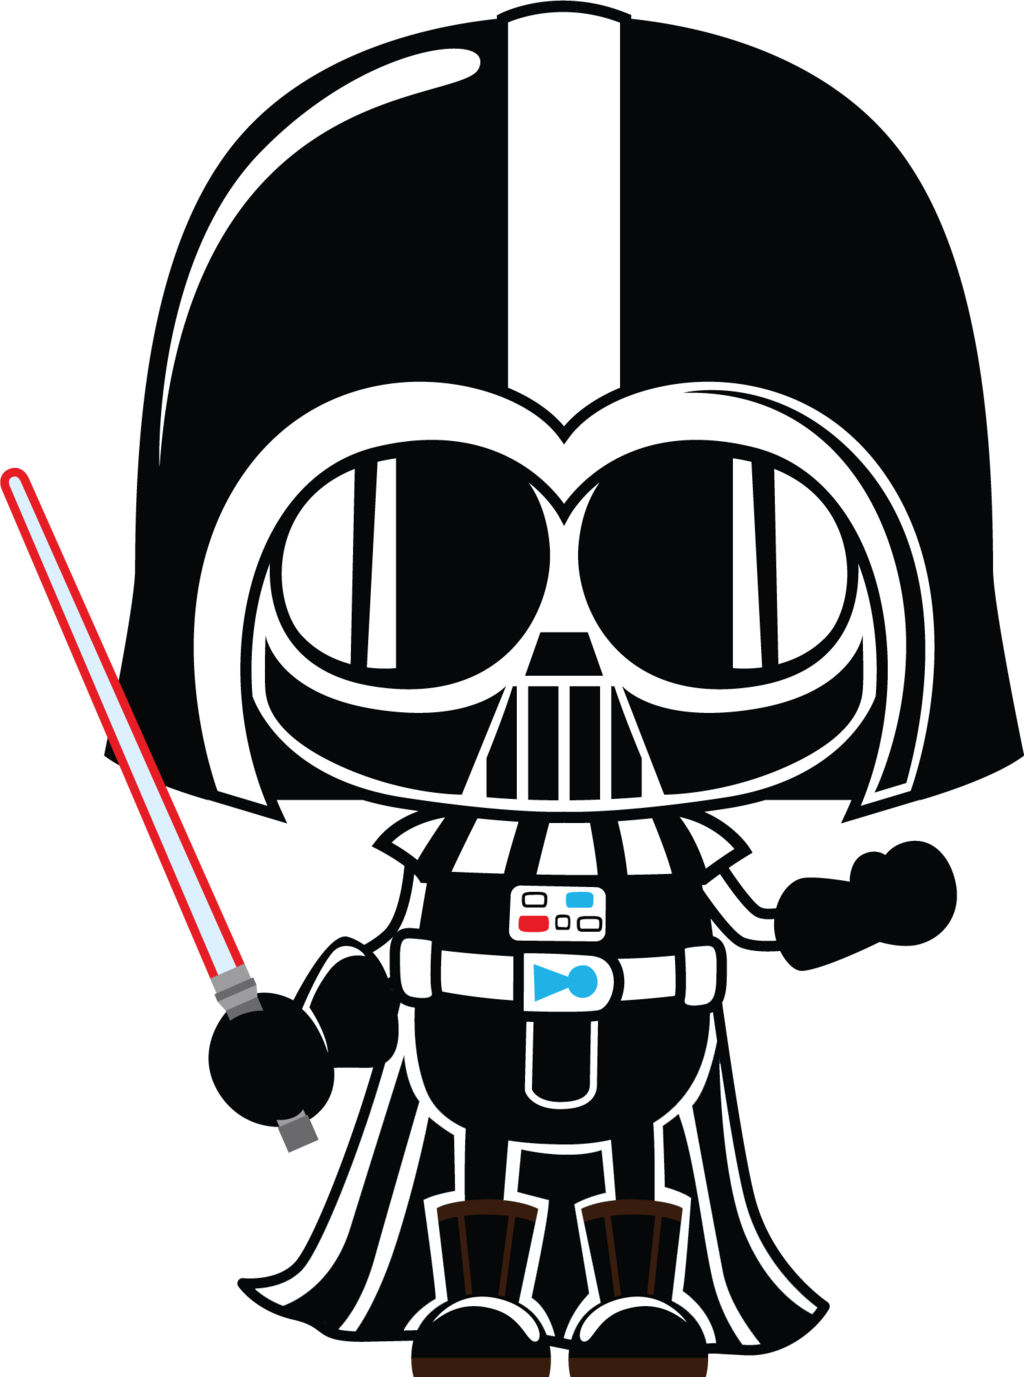 Star wars force clipart clipart free download Darth Vader by Chrispix326.deviantart.com on @DeviantArt | Birthdays ... clipart free download